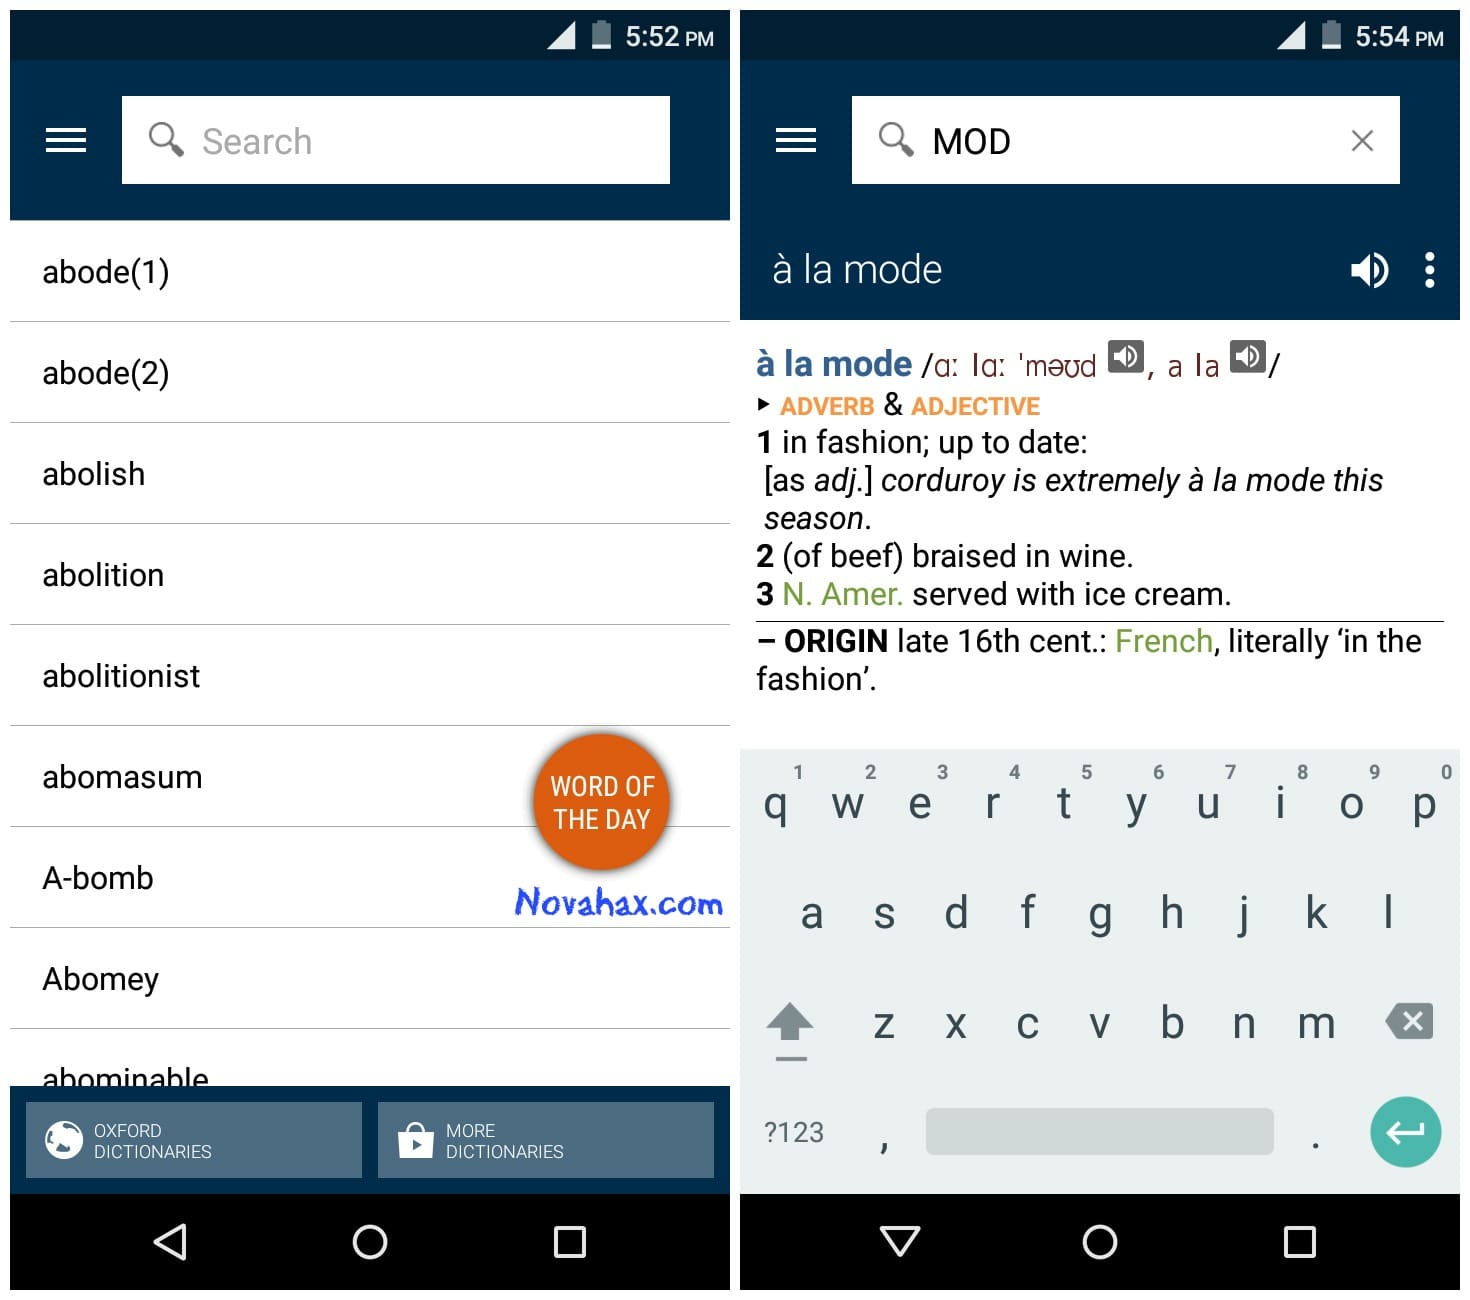 Oxford Dictionary of English v7.0.177 Premium APK Free